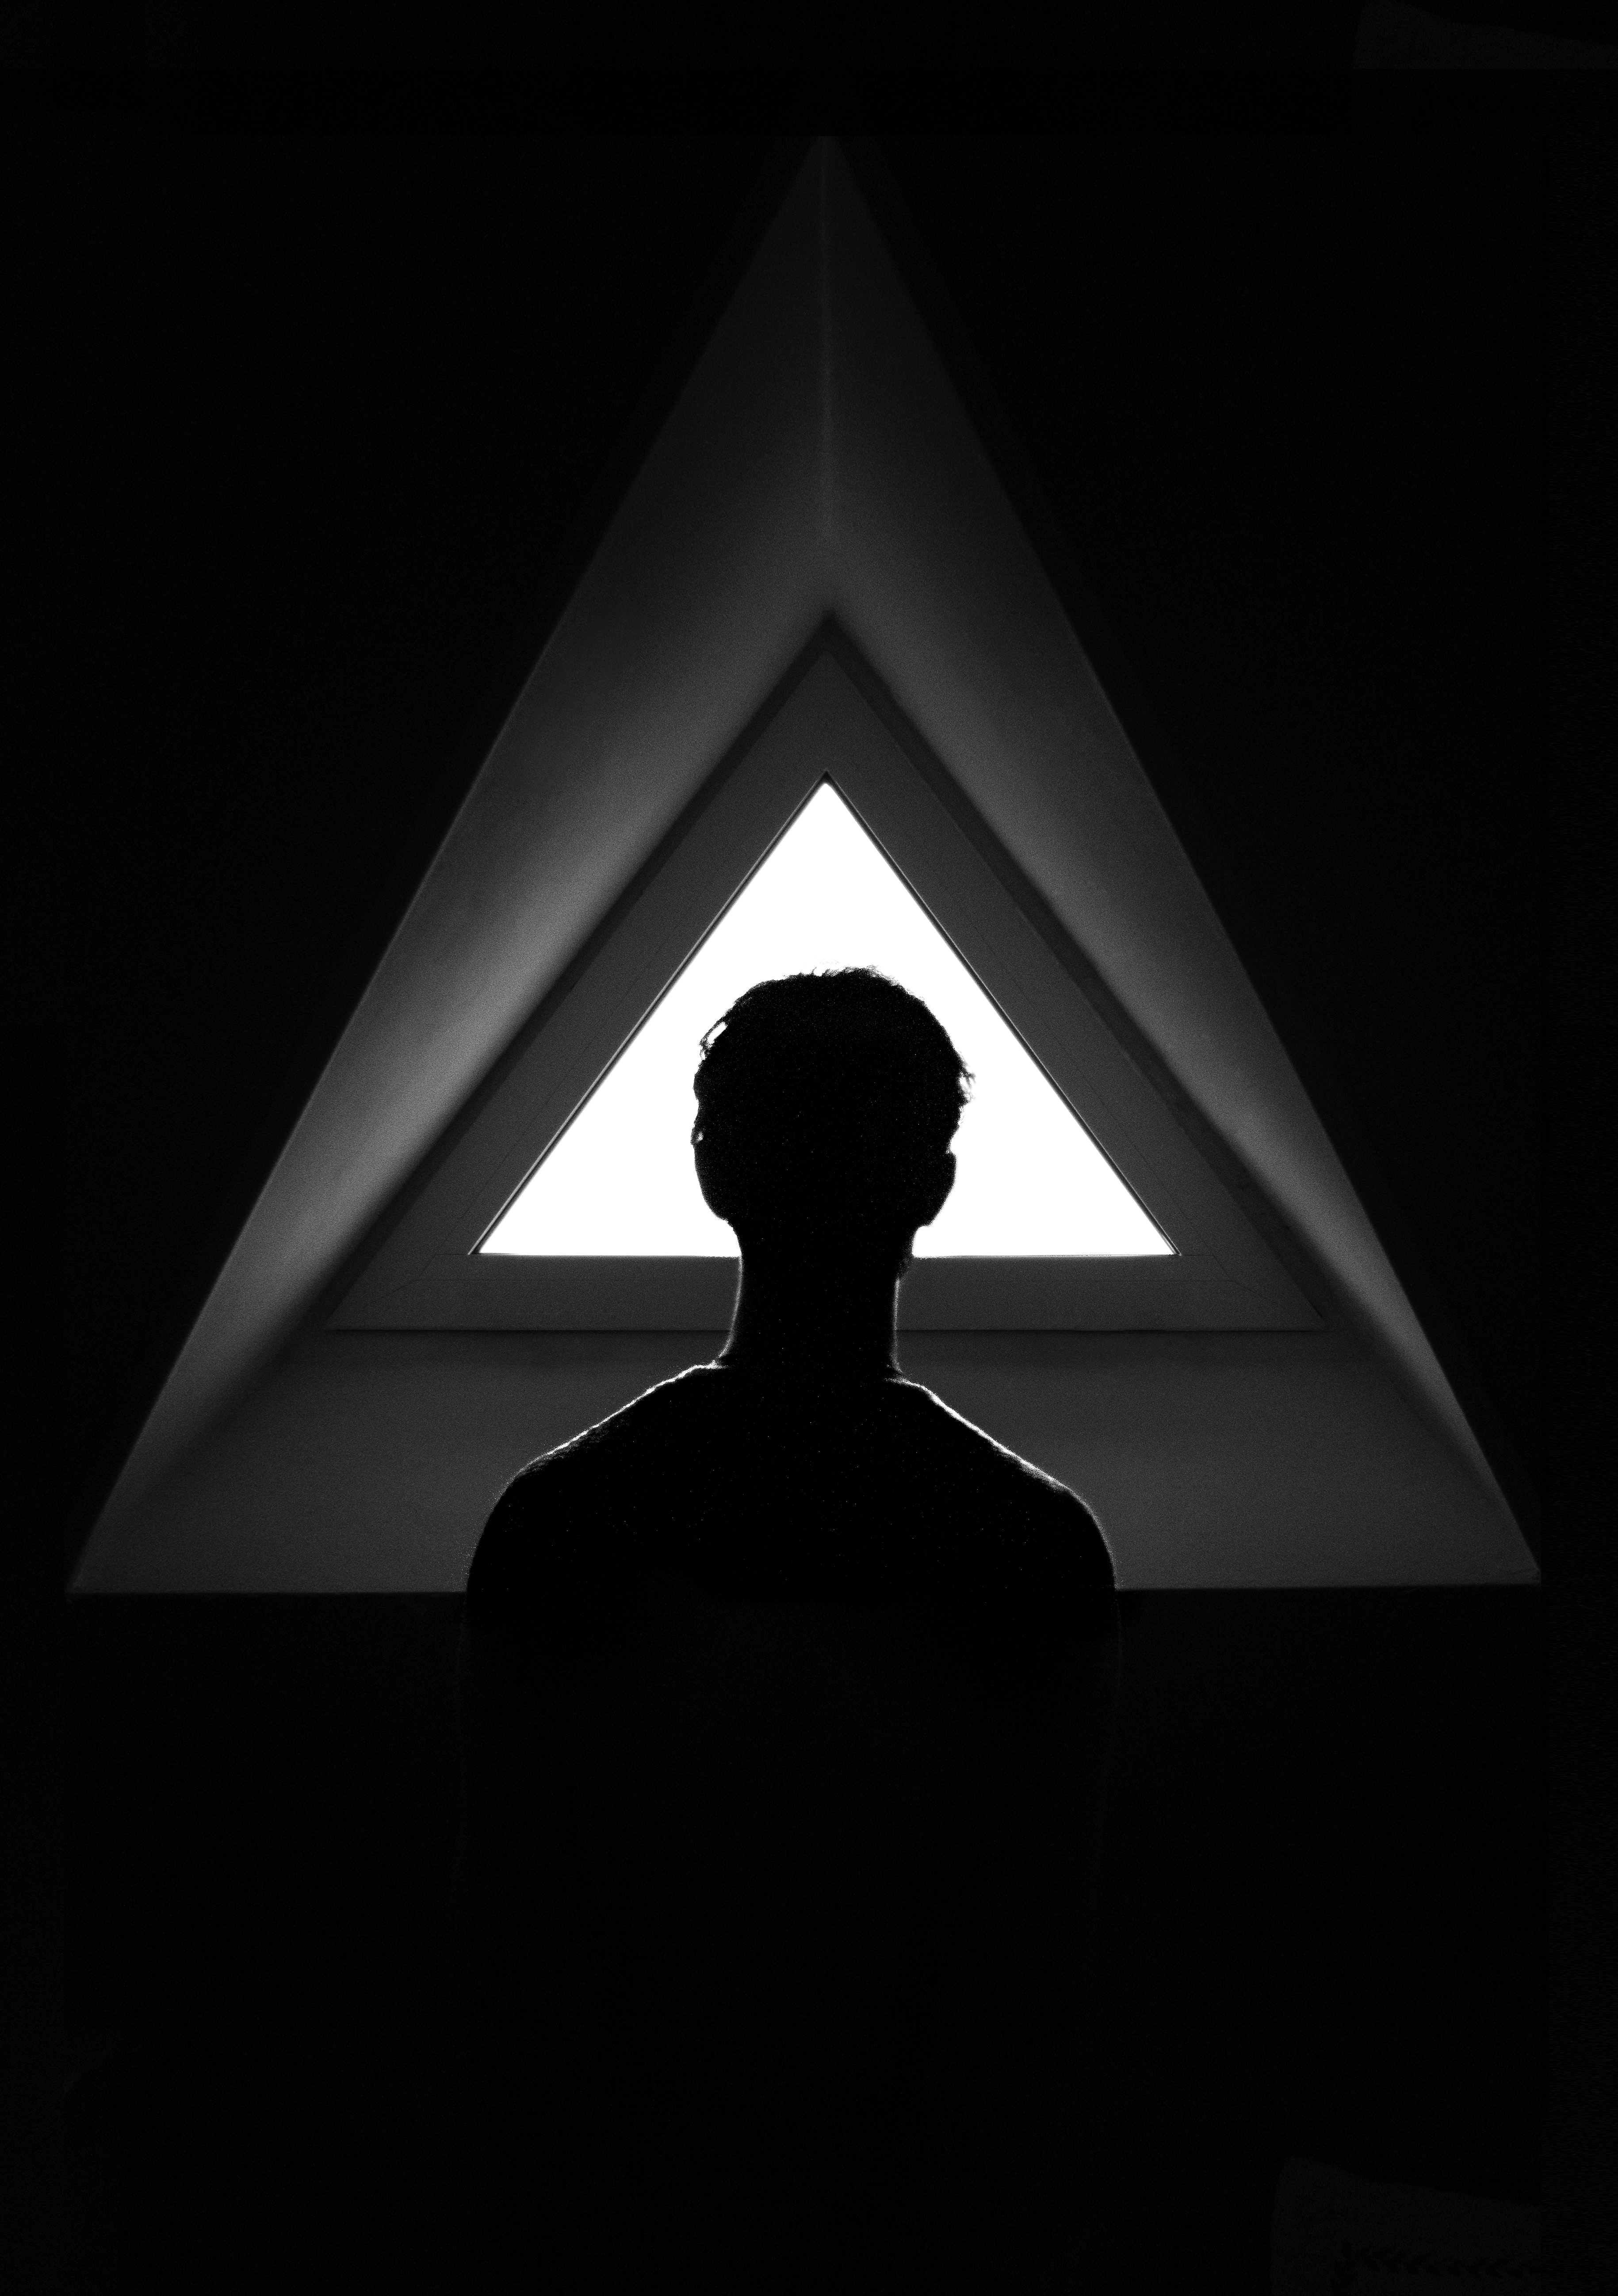 silhouette of person standing on triangle window